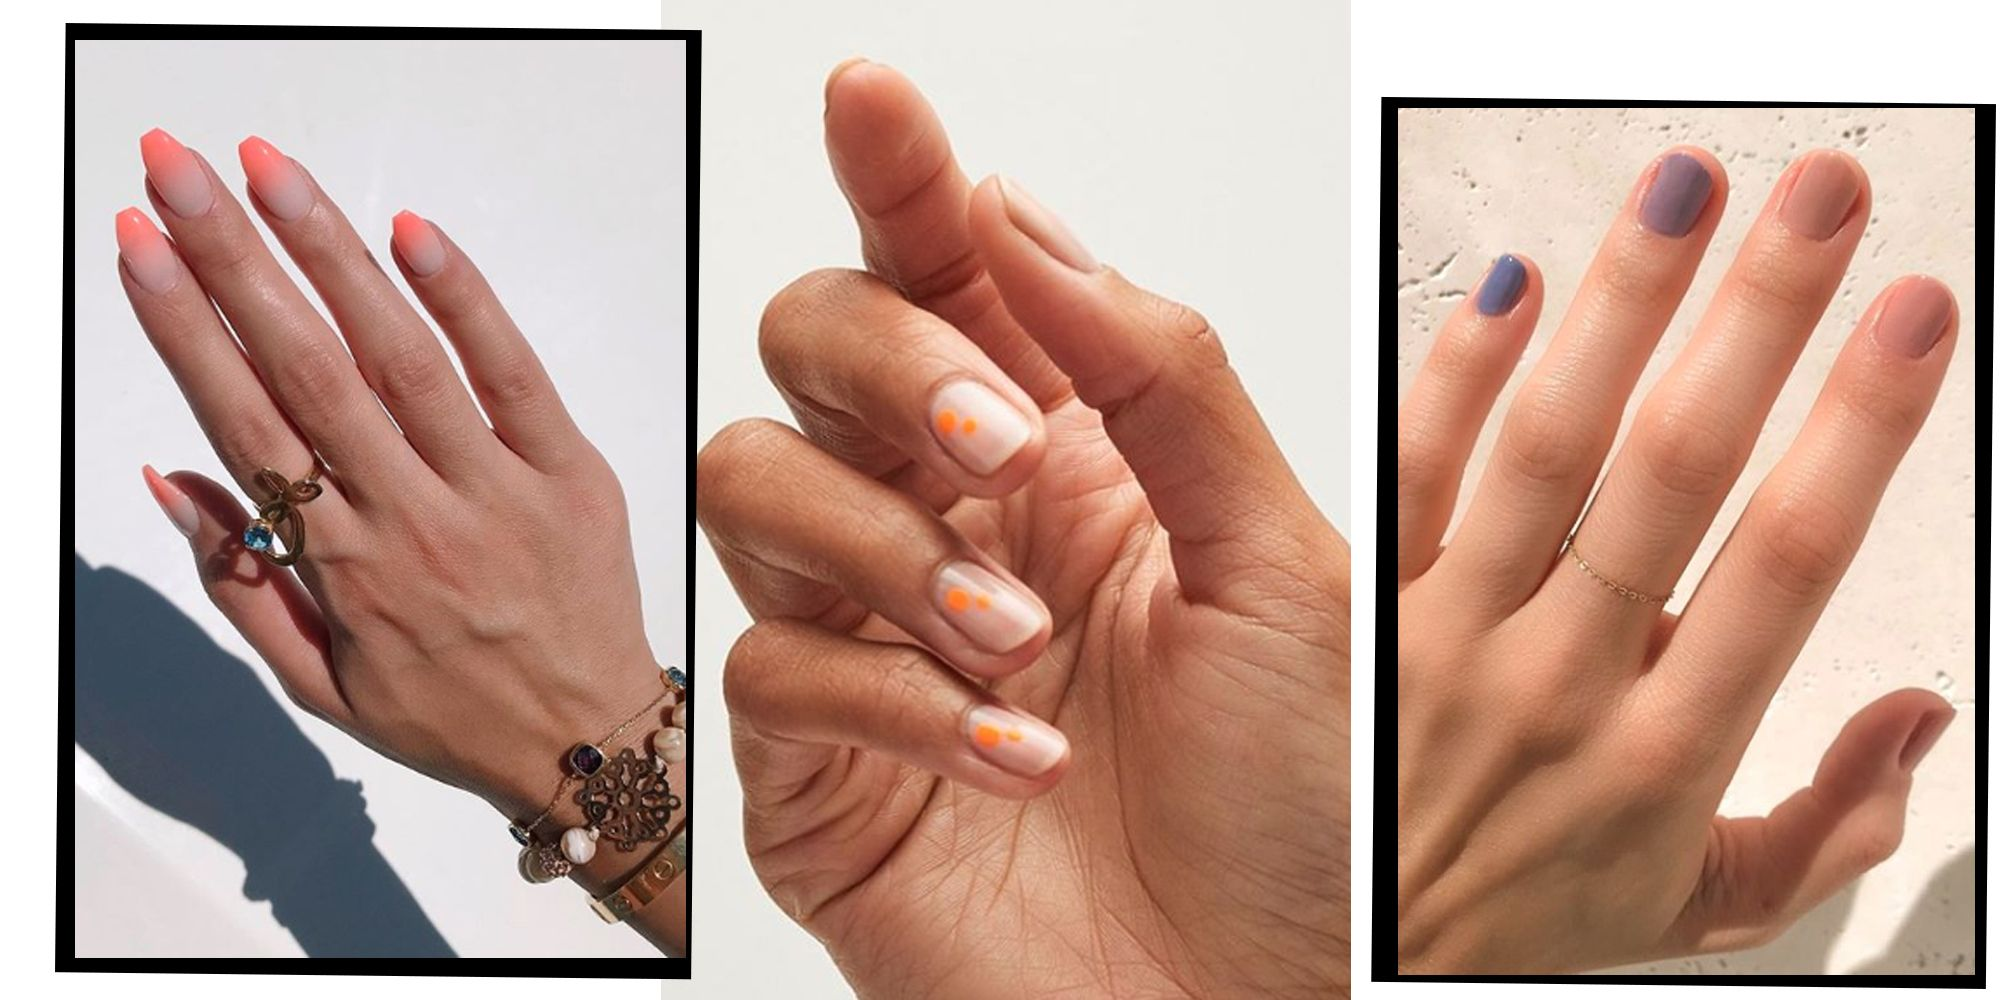 Nail Shapes - From Almond And Stiletto To Coffin And Oval